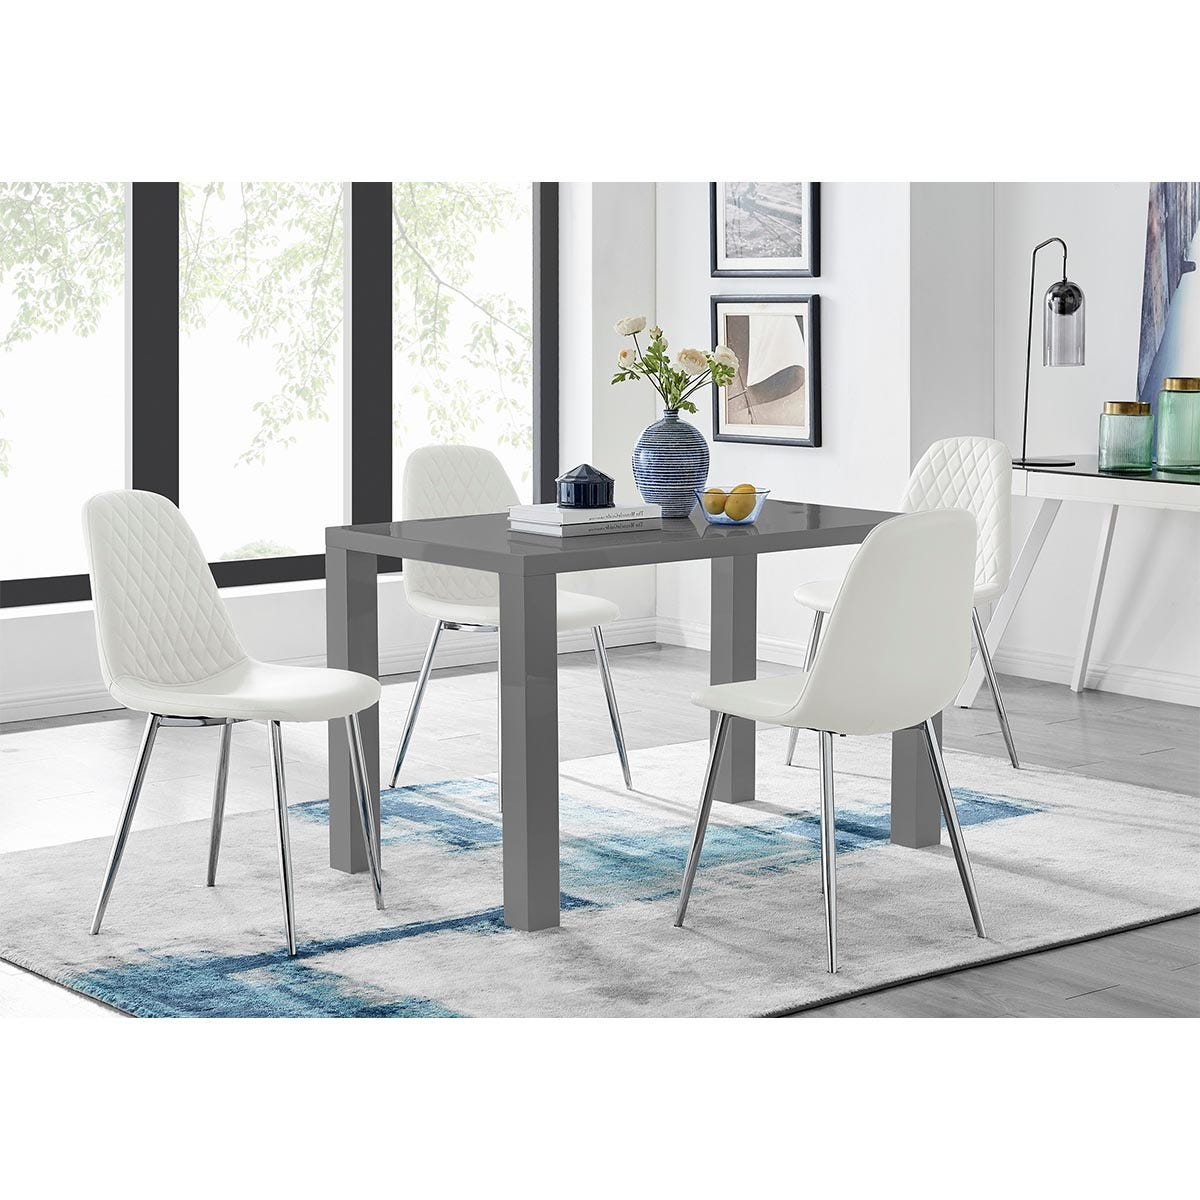 Furniture Box Pivero Grey High Gloss Dining Table And 4 White Corona Silver Chairs Set